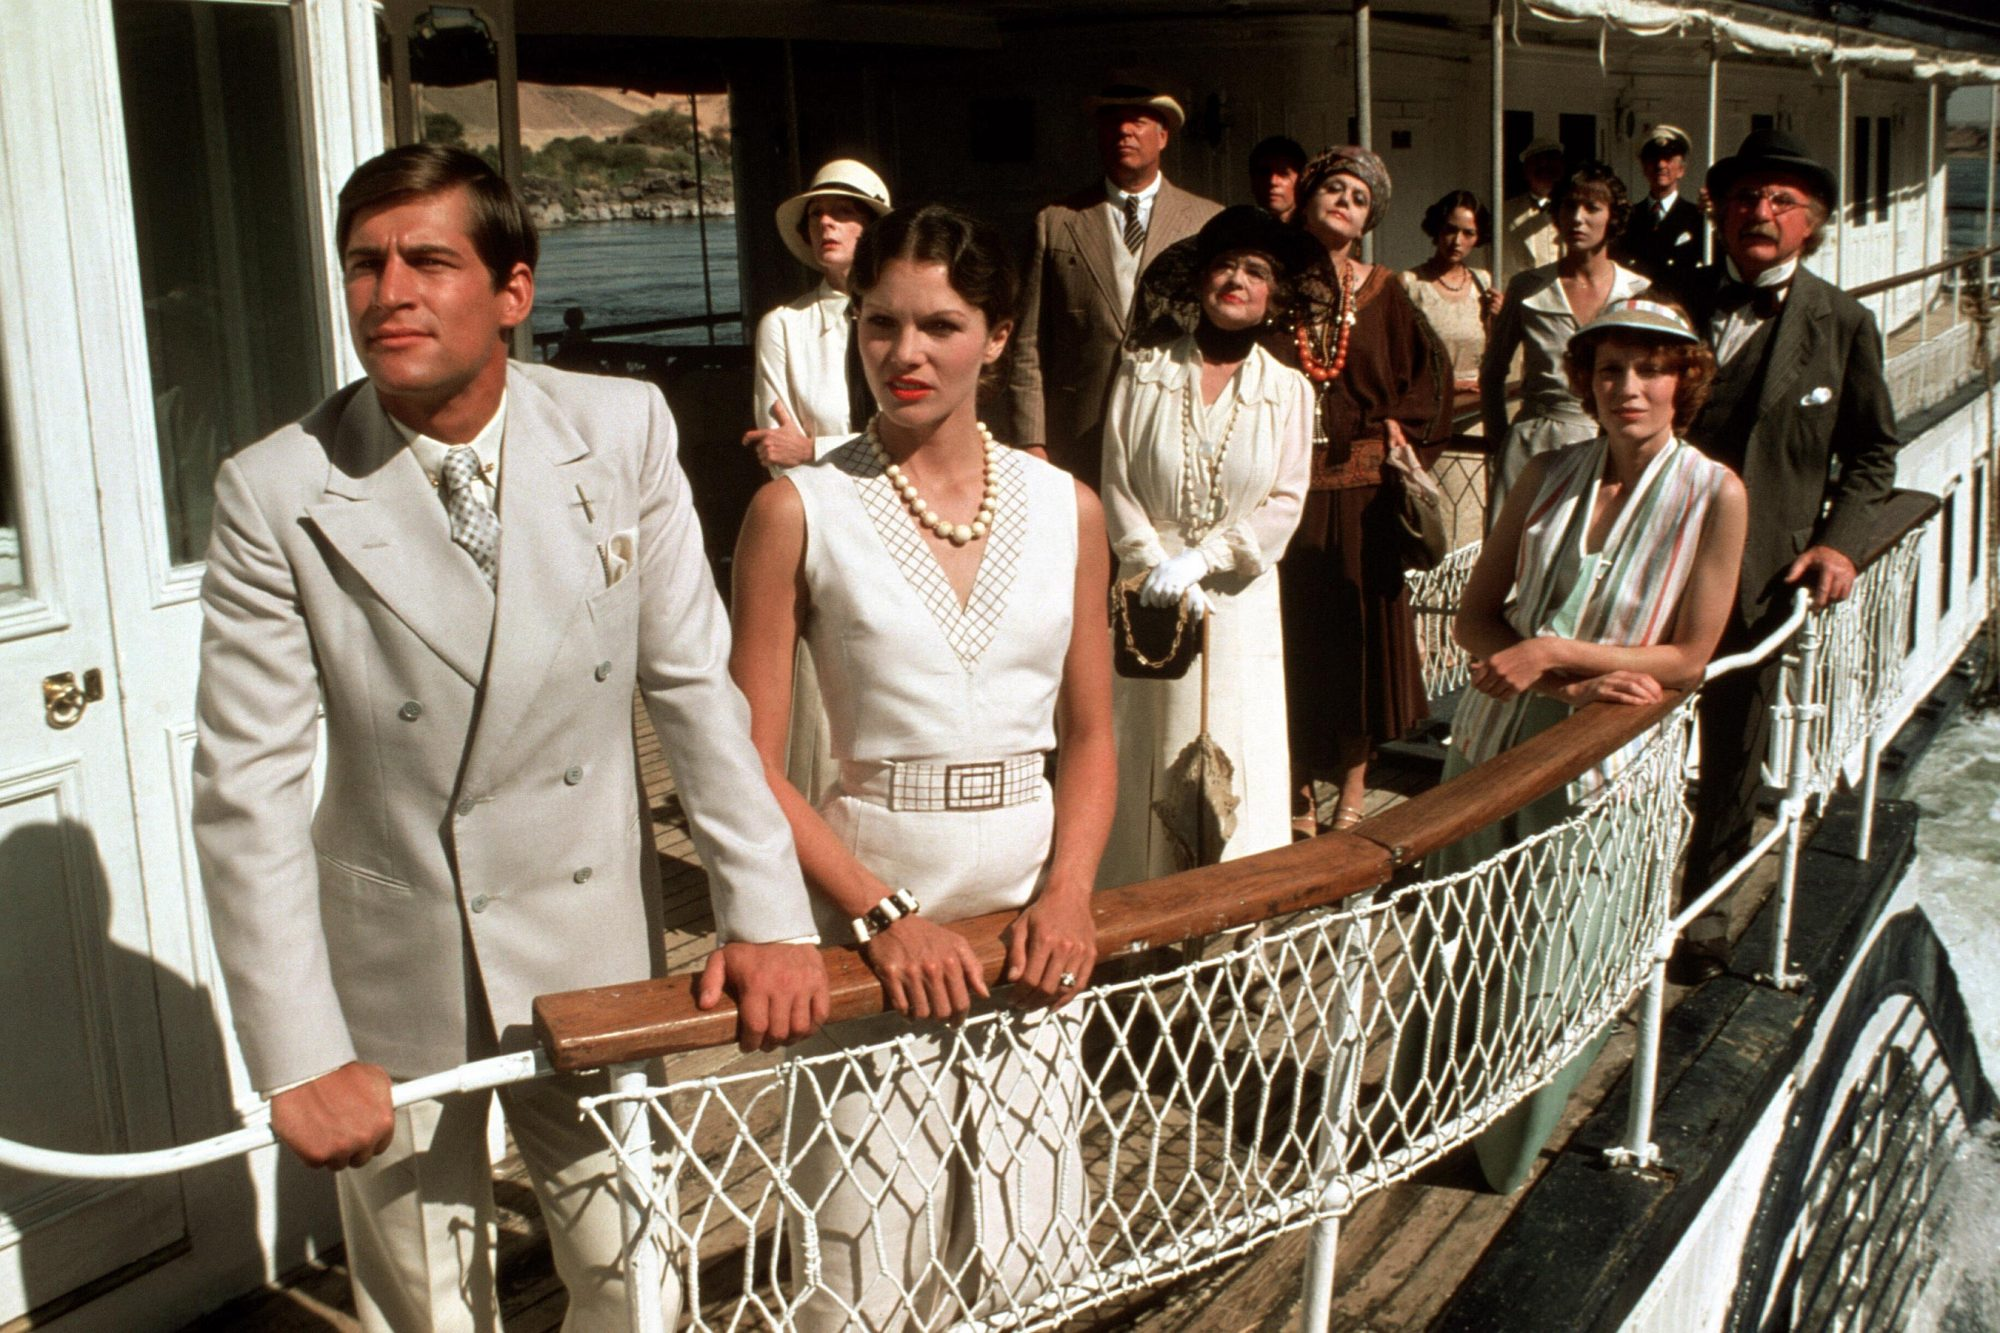 DEATH ON THE NILE, front: Simon MacCorkindale, Lois Chiles, first row: Maggie Smith, Bette Davis, Mi